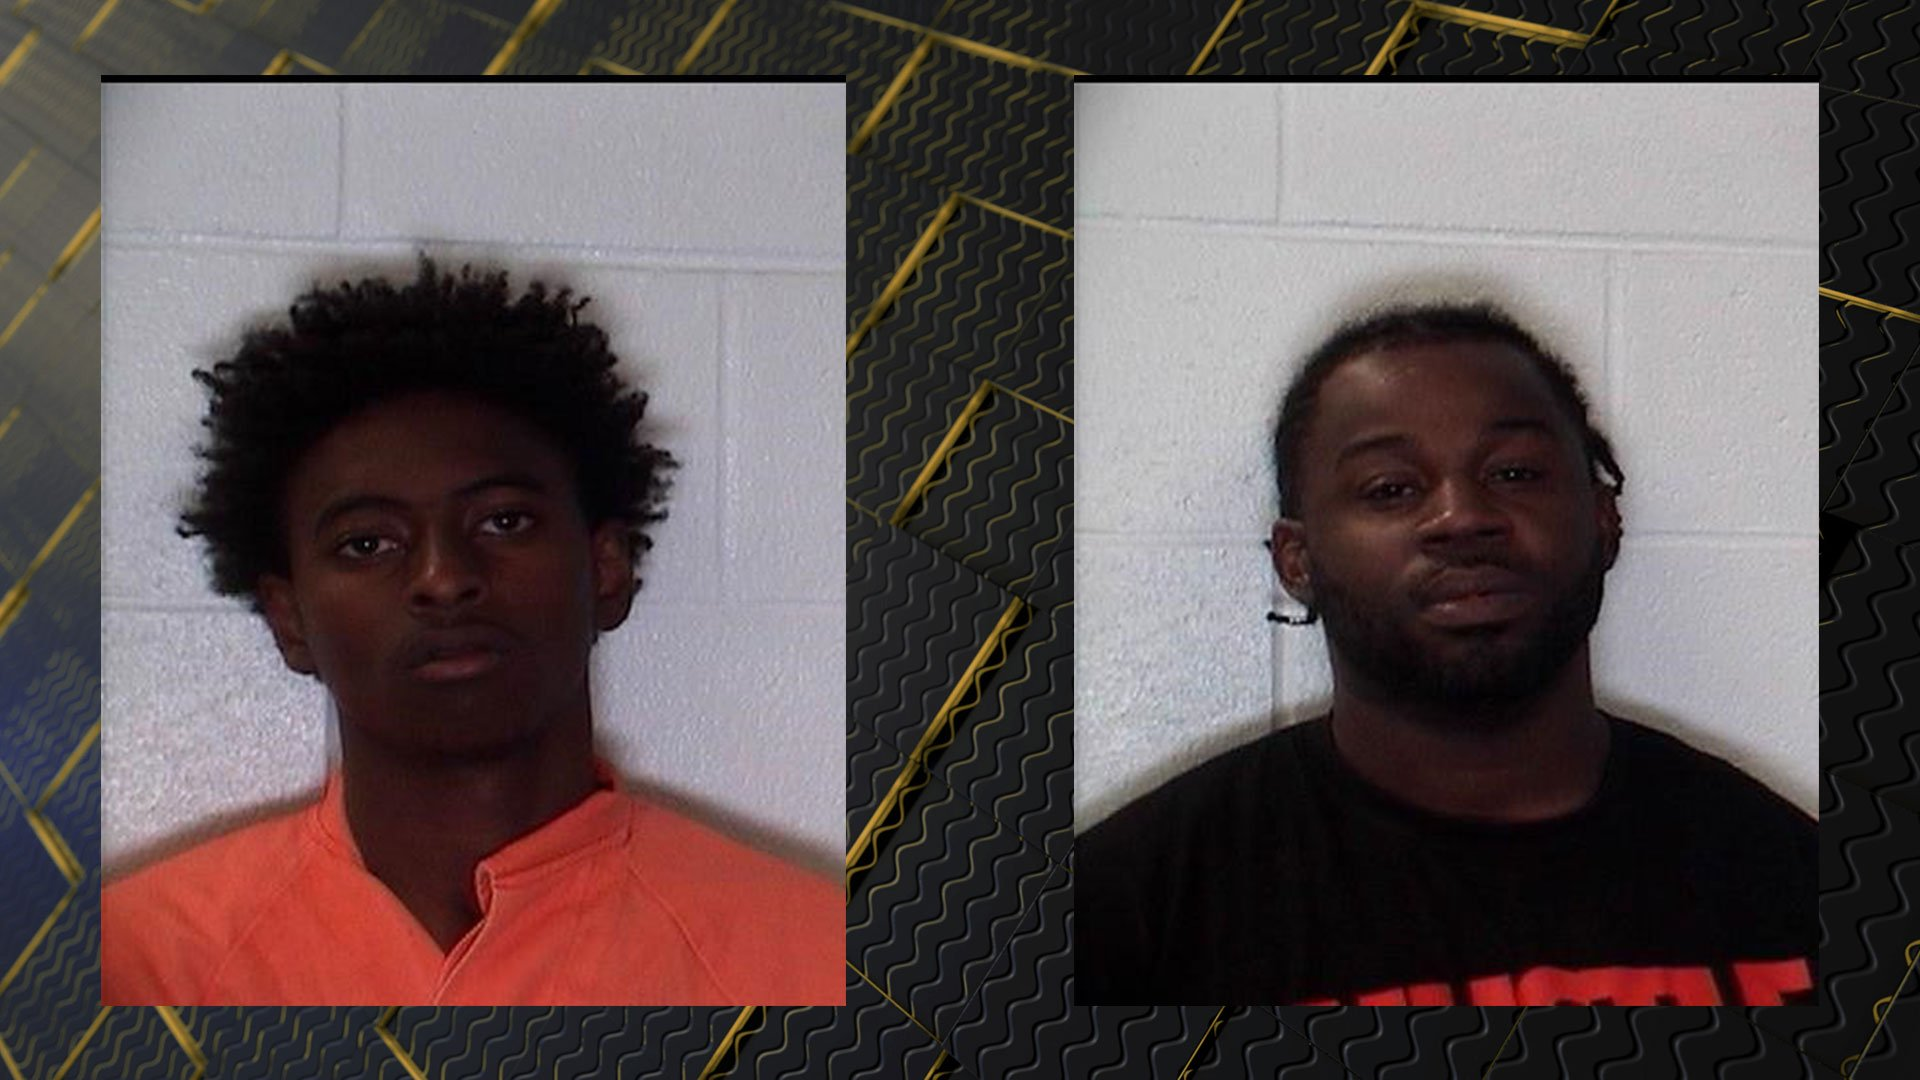 Kadarious Hobbs (left) and Aundra Damarcus (right) (source: Georgia Bureau of Investigations)